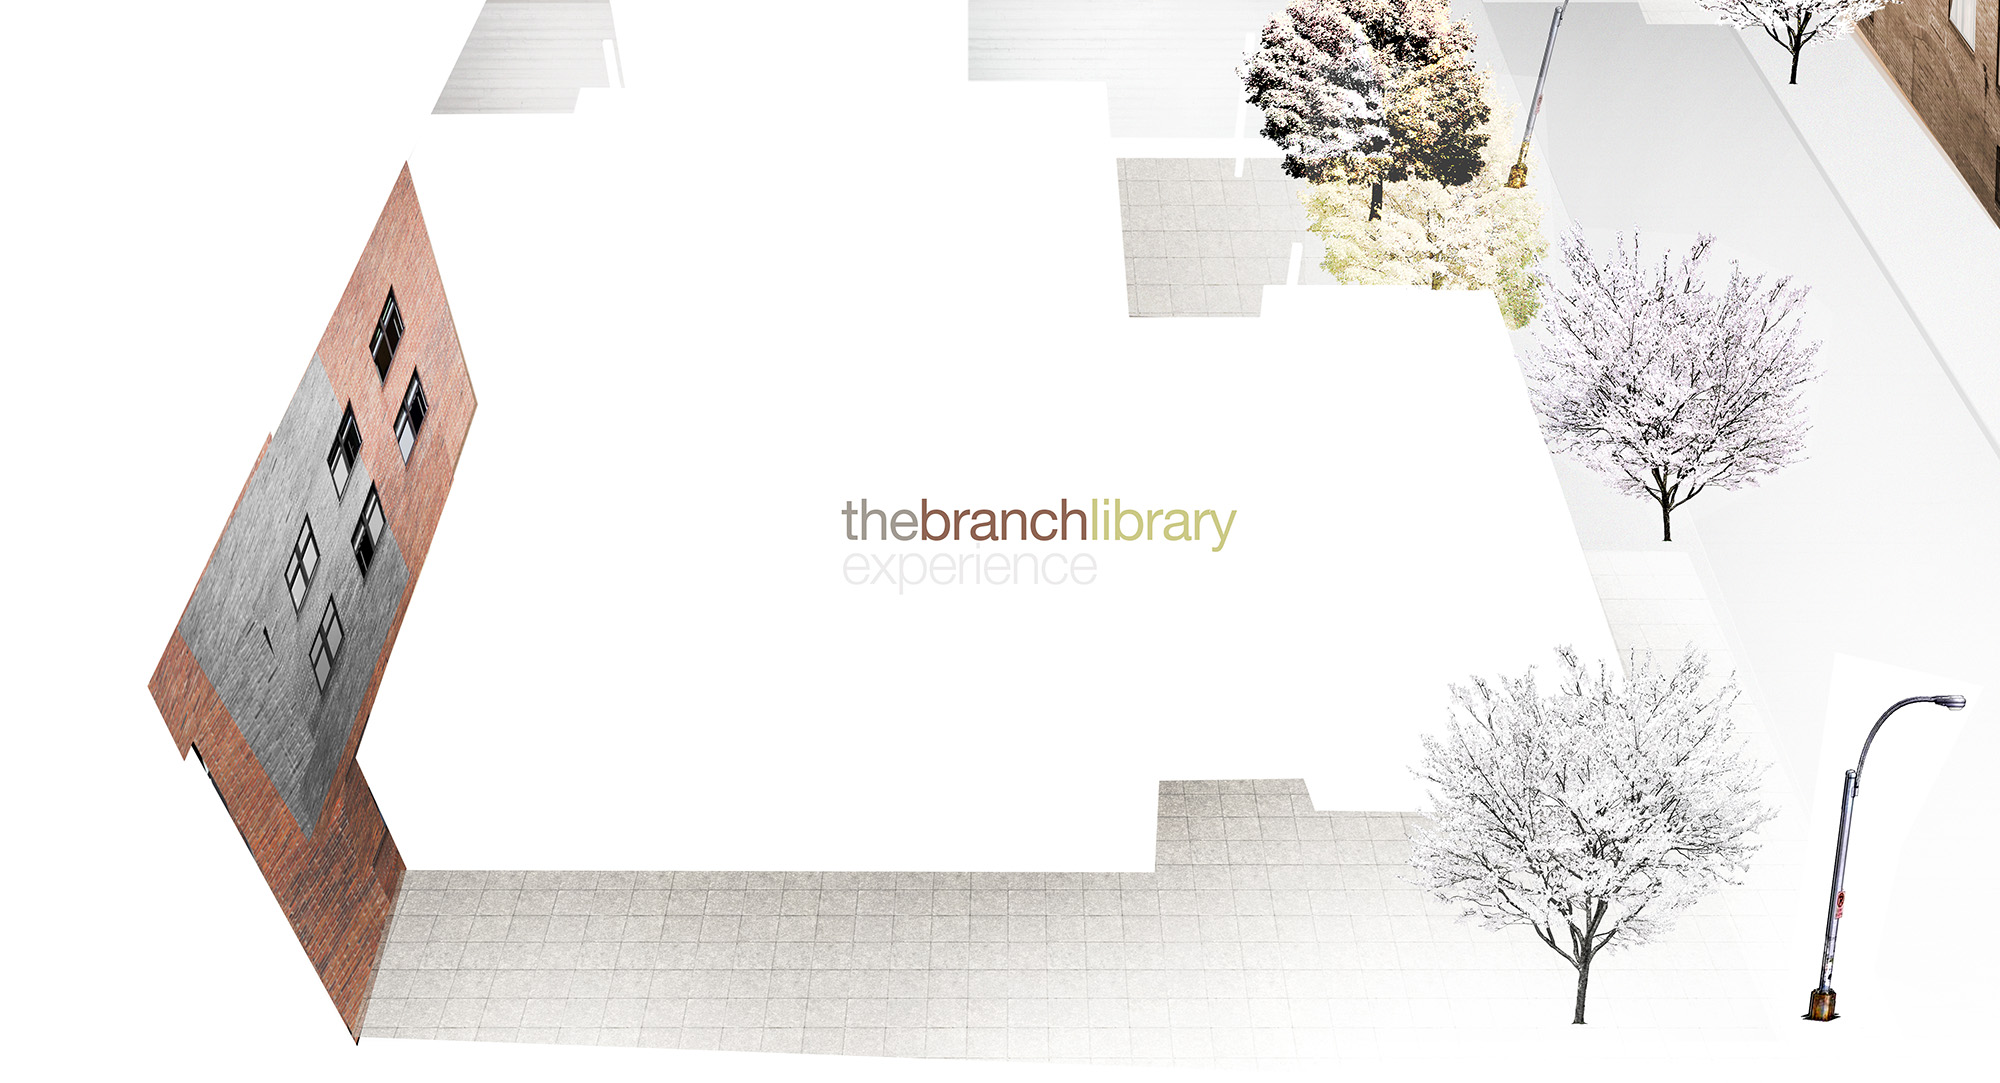 the branch library experience